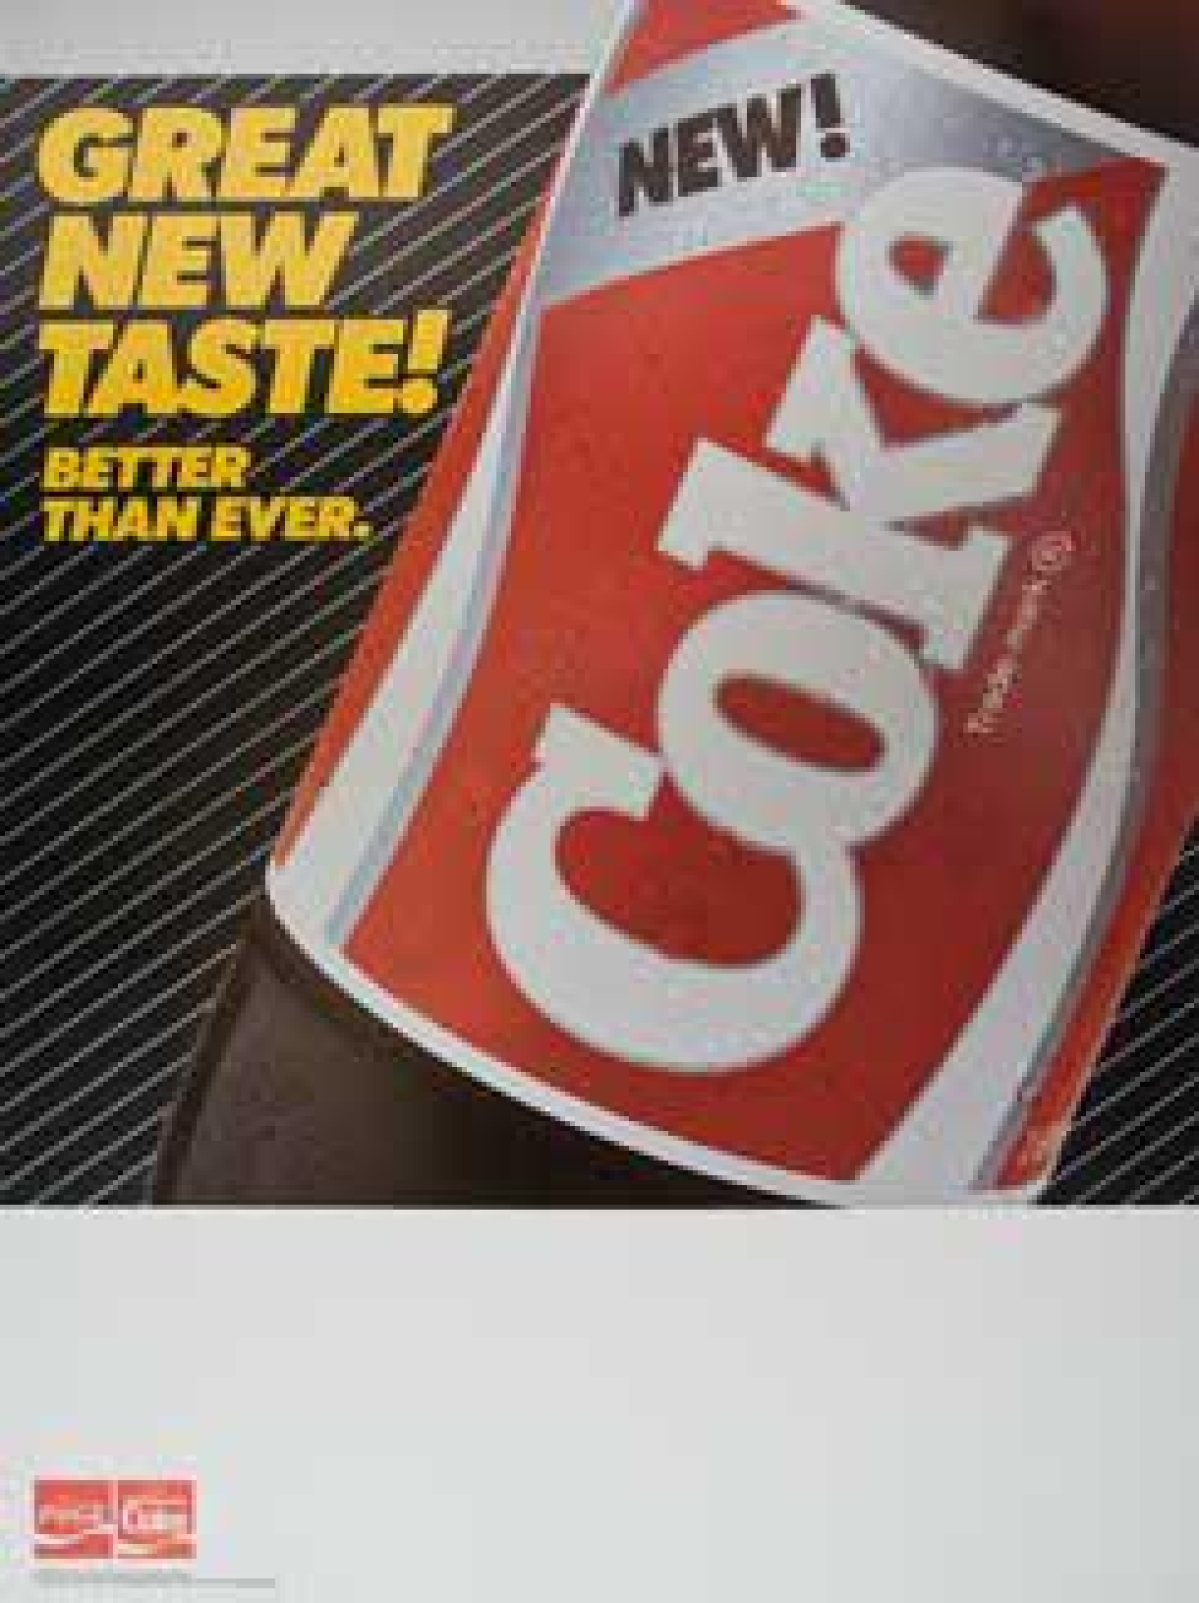 Another vintage coke ad